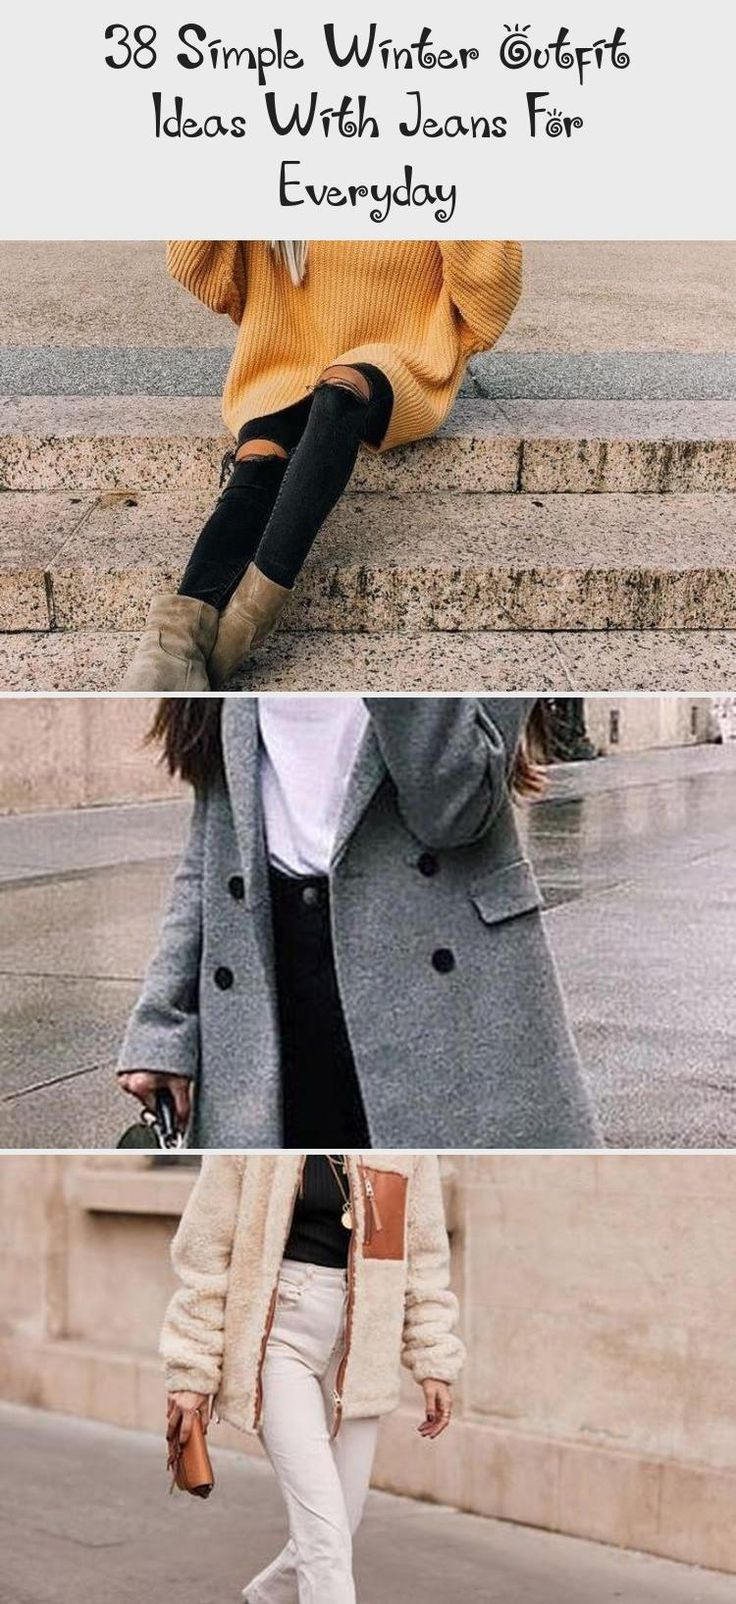 38 Simple Winter Outfit Ideas With Jeans For Everyday